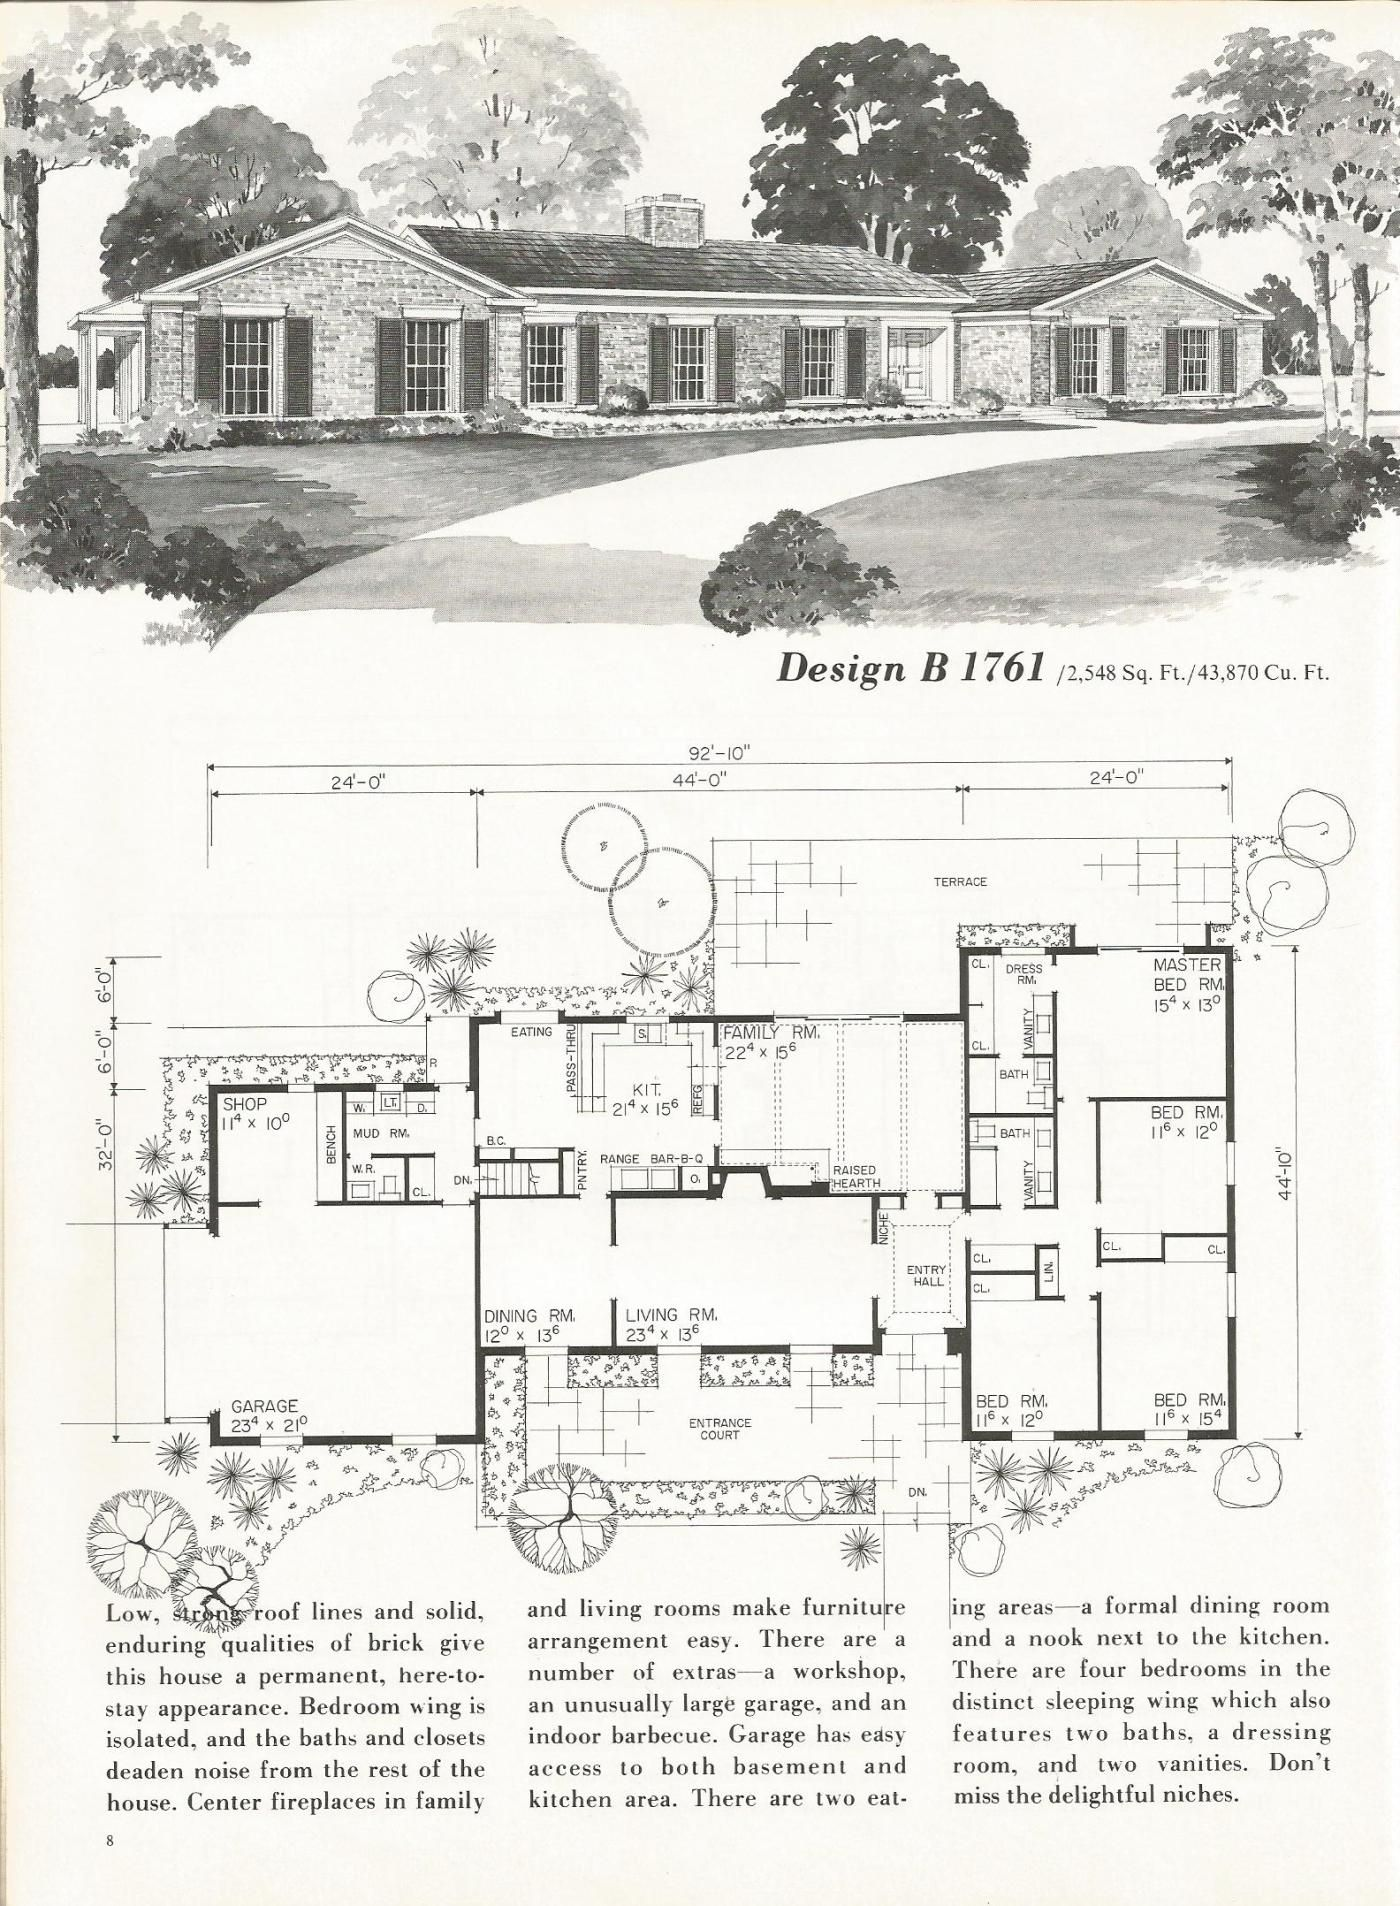 Favorite Front Of Old Ranch Plans Open Up Living And Steal Space For Master Bath Closet Vintage House Plans Ranch House Plans Colonial House Plans